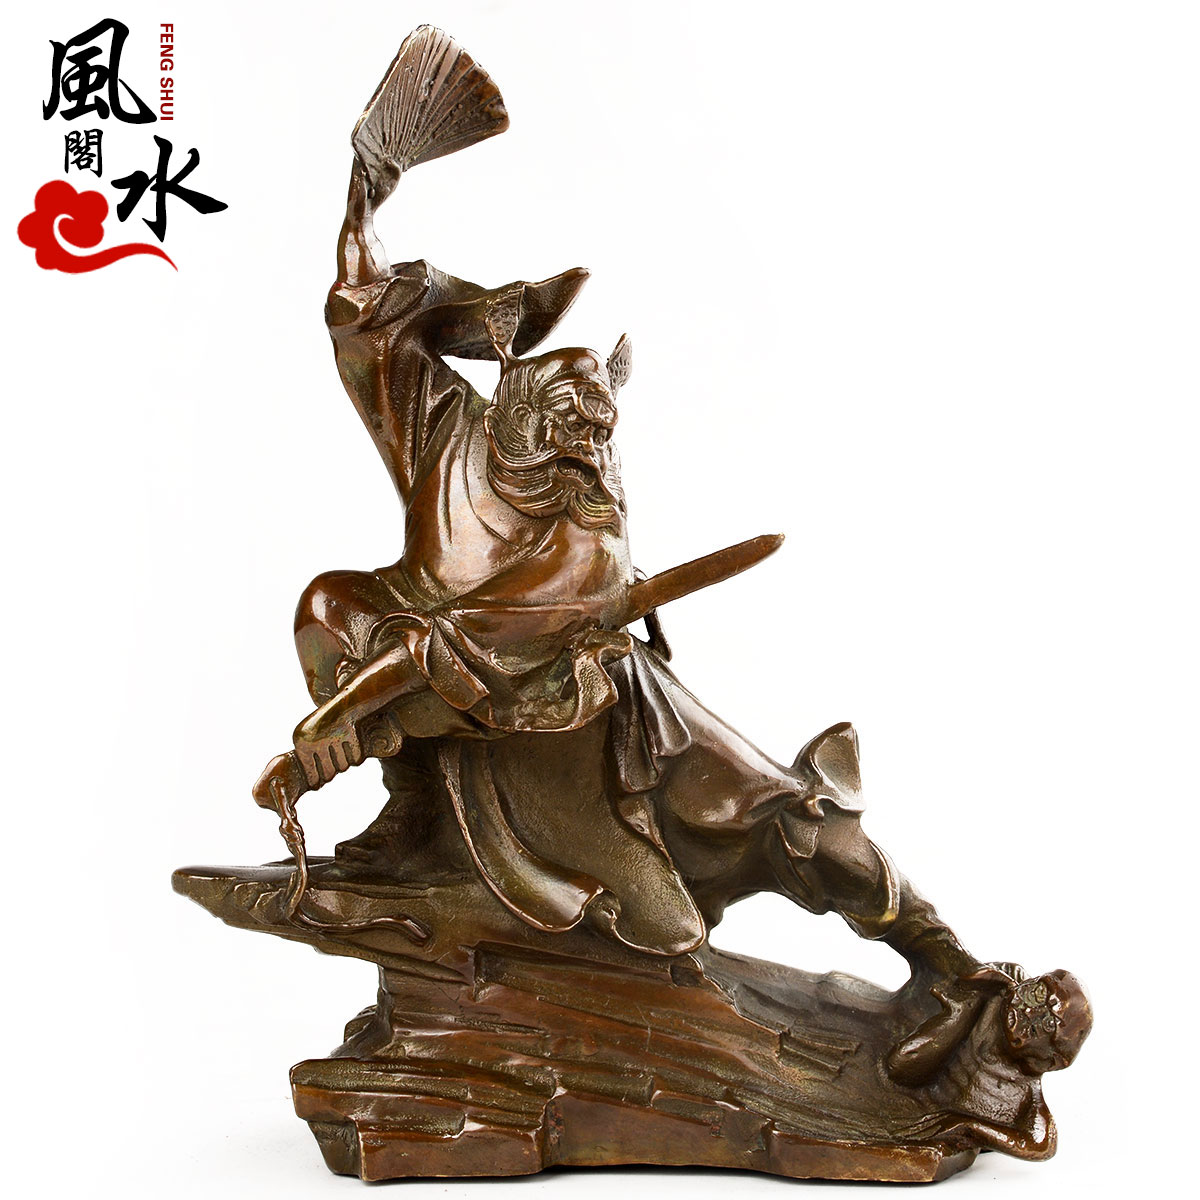 Feng shui court opening copper statue of guan zhong kui zhong kui copper feng shui ornaments home decorations crafts pendulum shipping